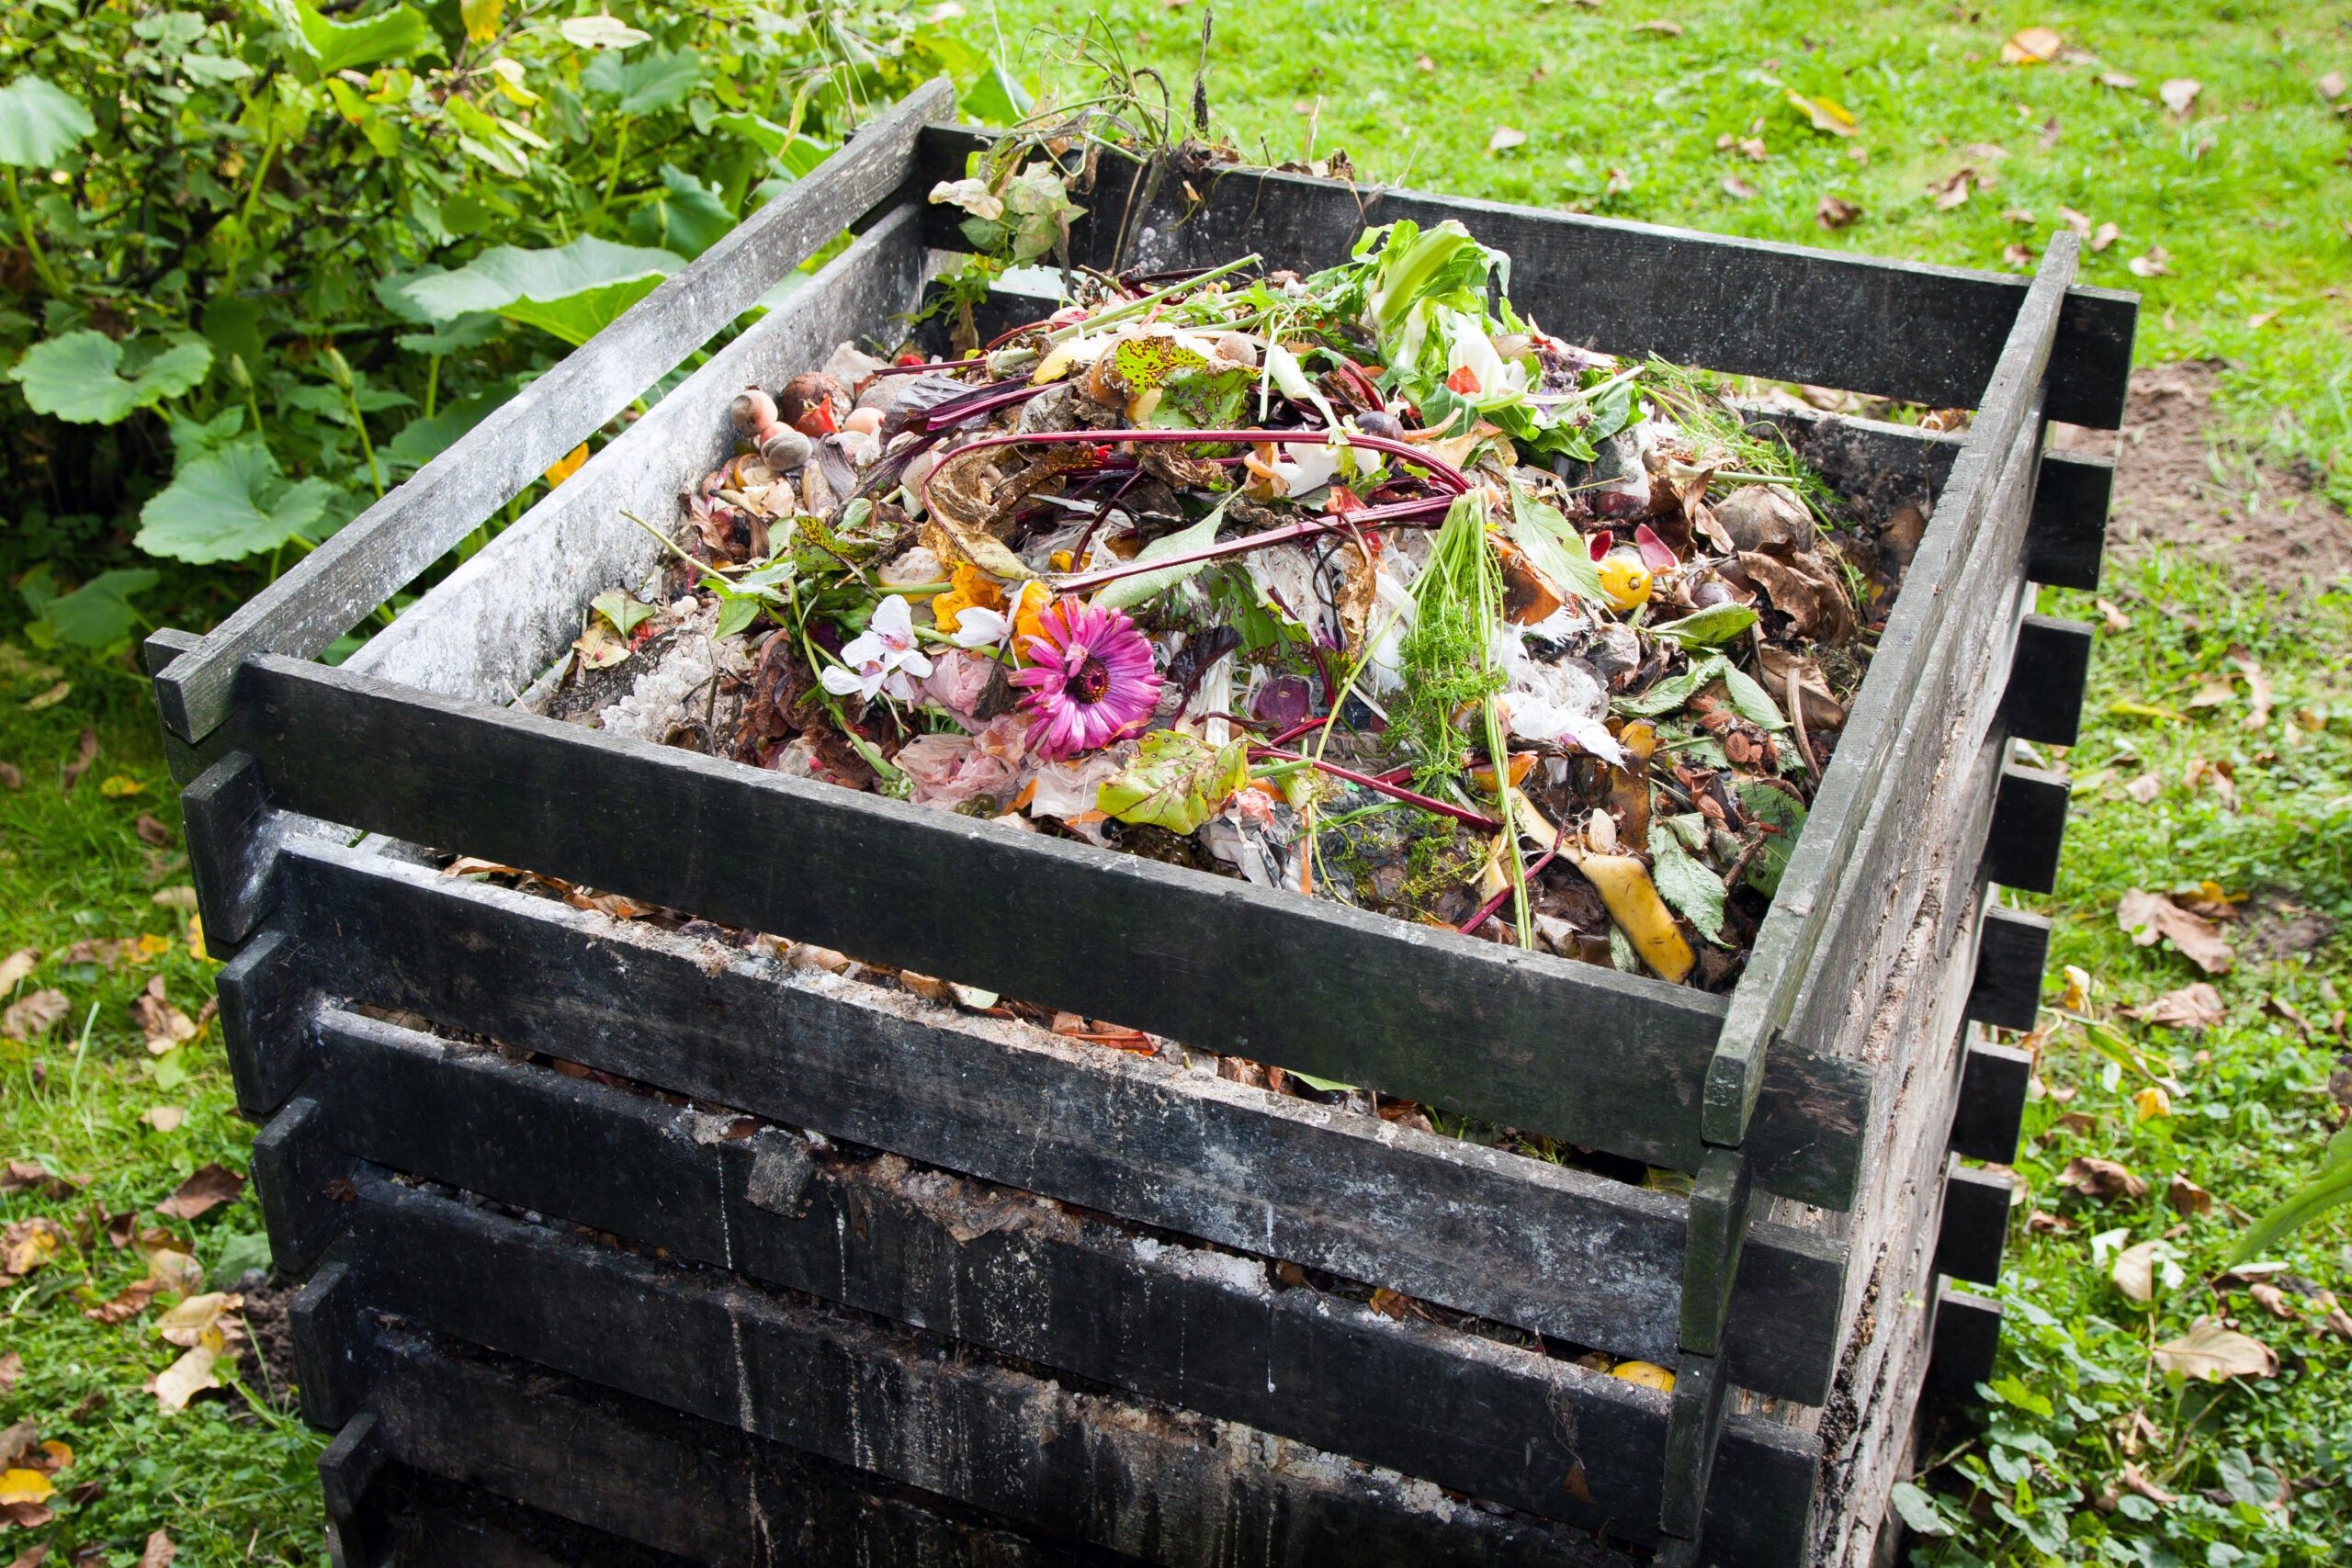 Eco-friendly packaging could be poisoning our compost